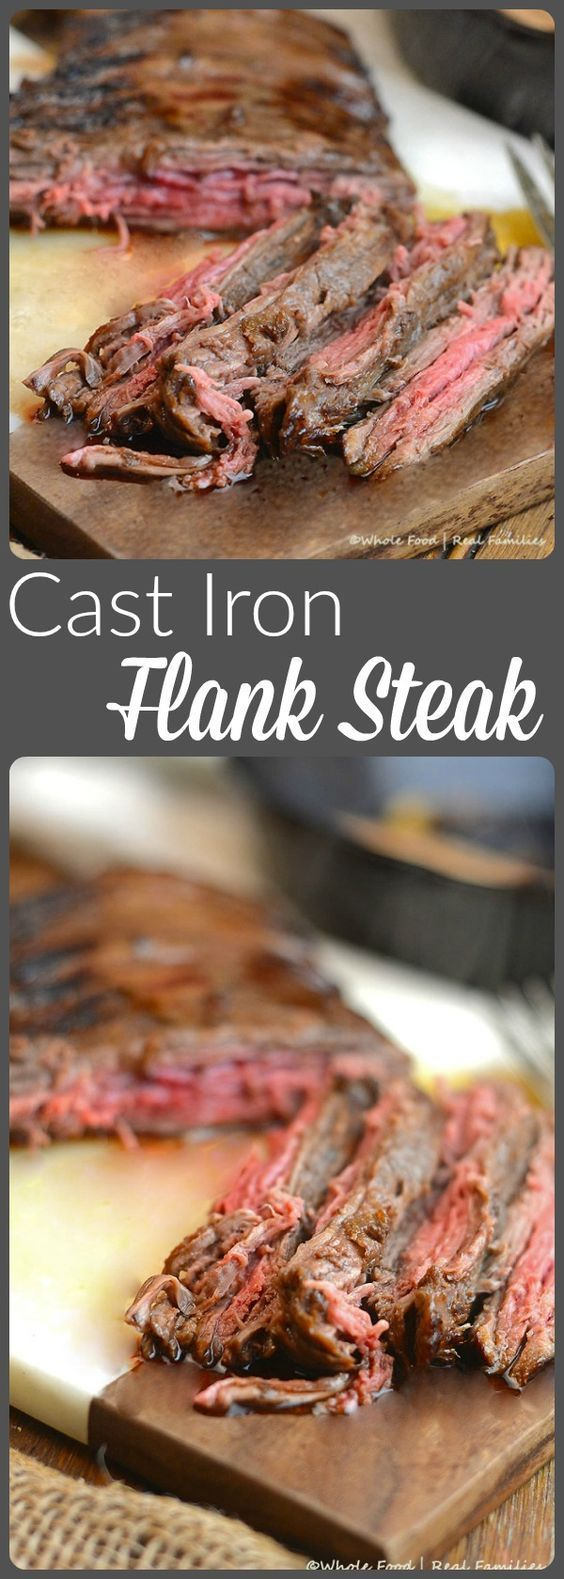 Cast Iron Flank Steak is a lean, economical dinner recipe with huge beef flavor. My family loves this recipe! @wholefoodrealfa @beef